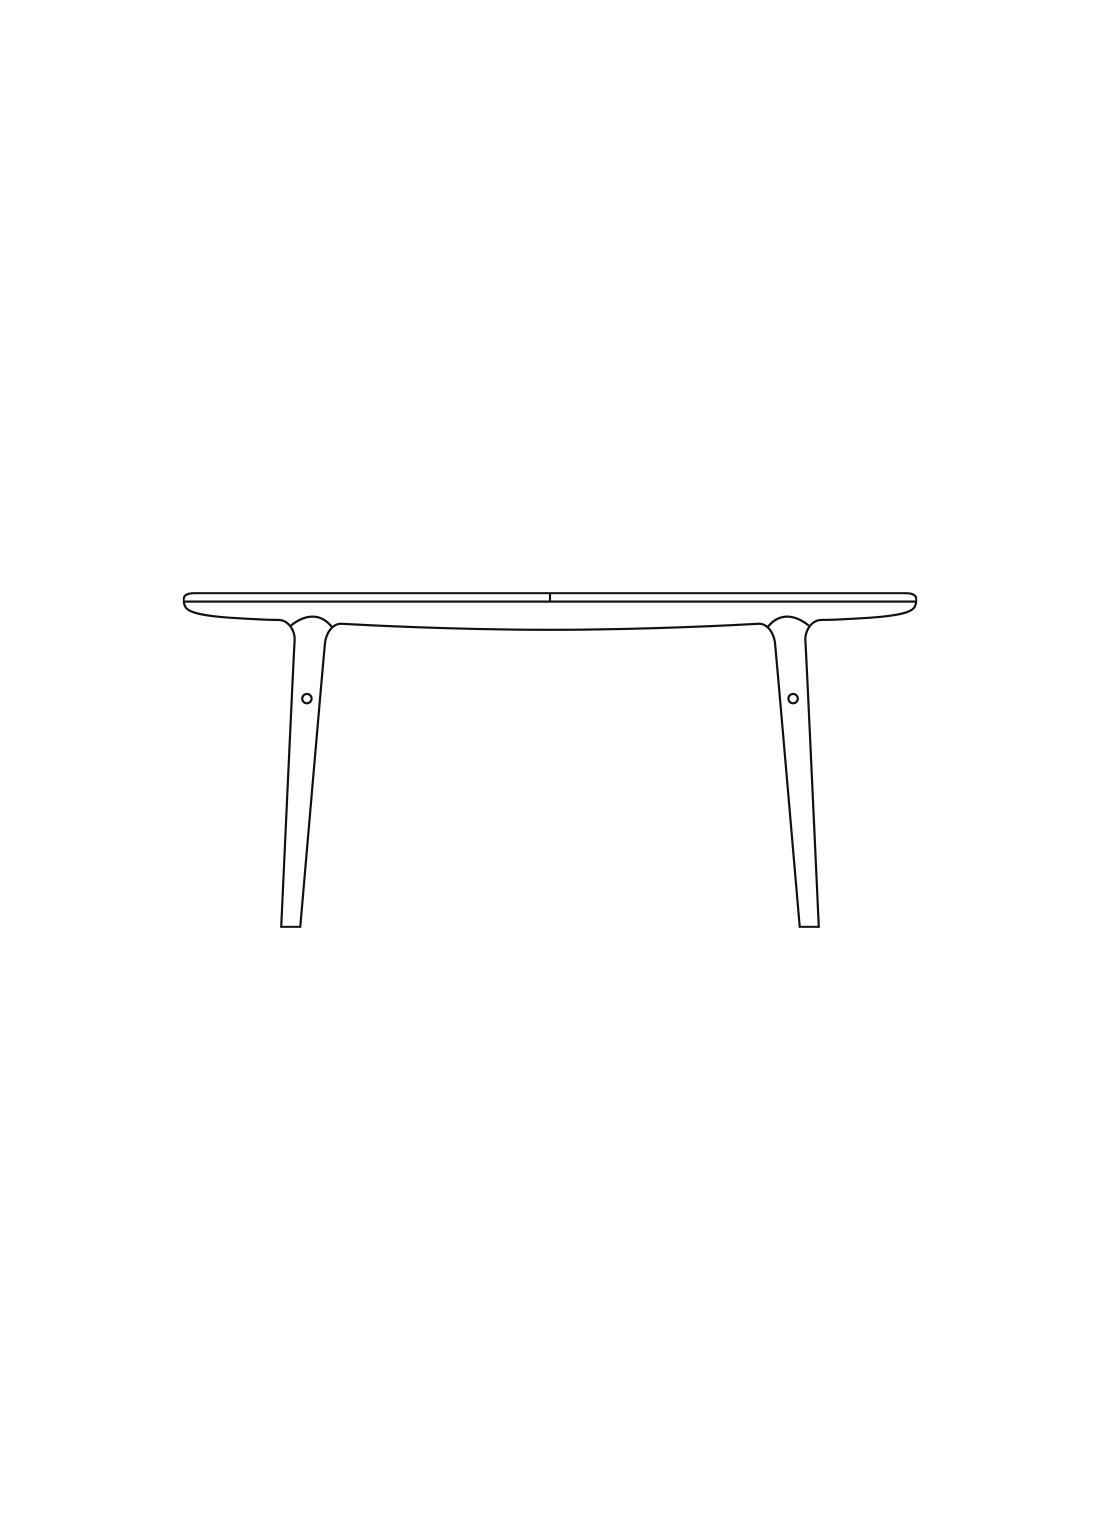 Evermore dining table illustration